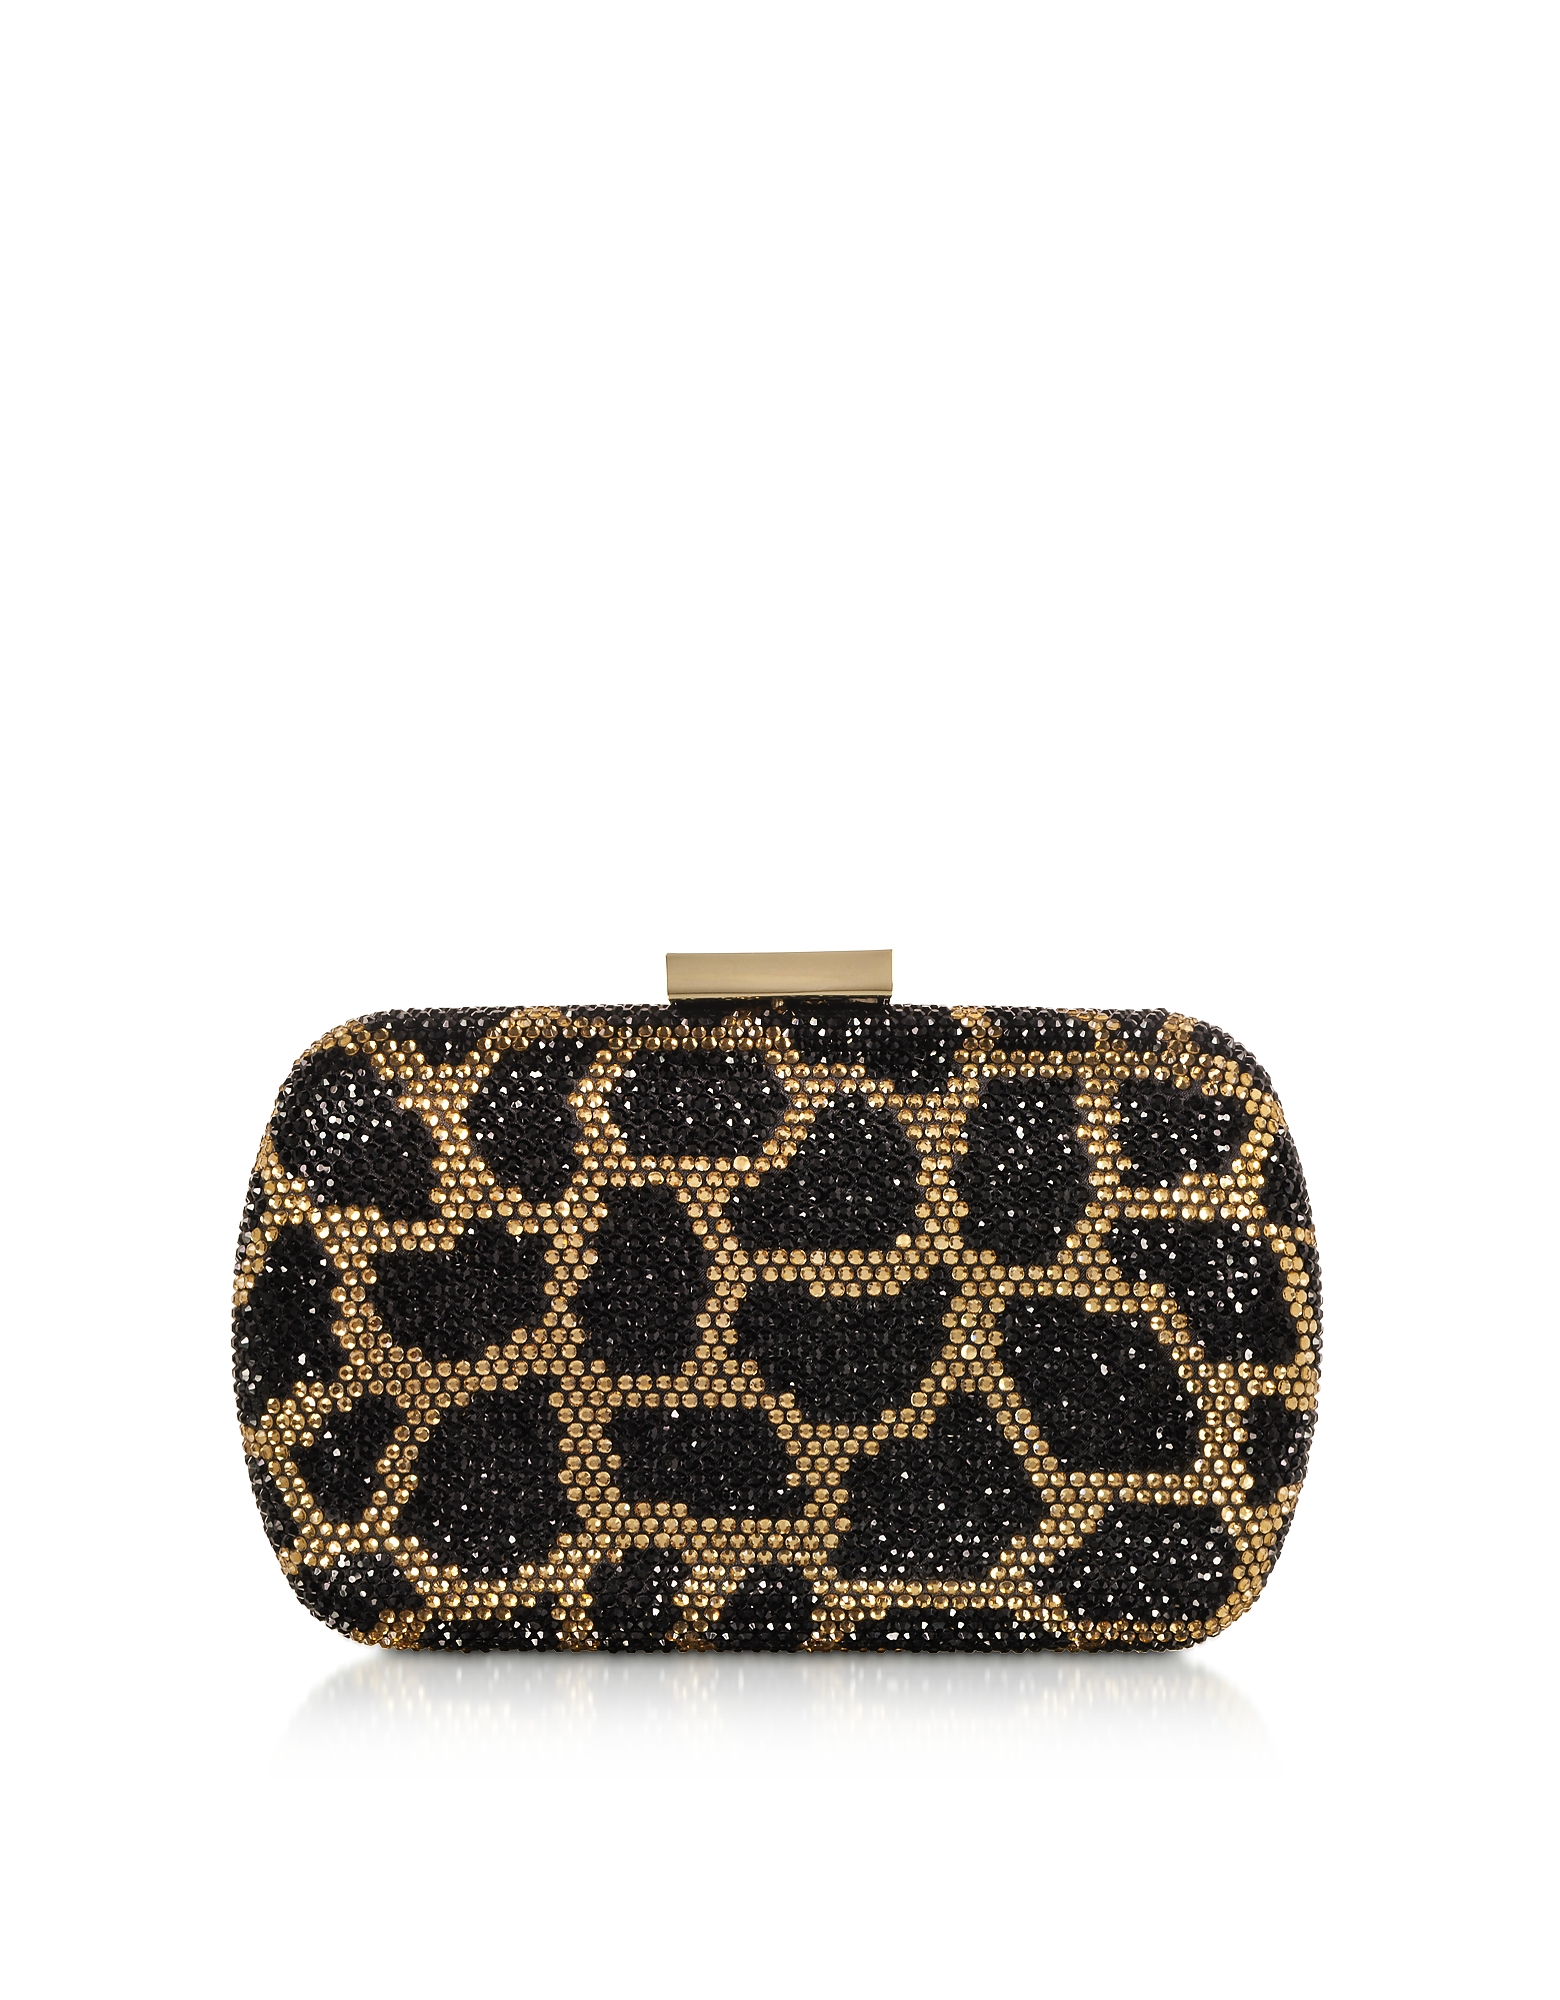 Image of Love Moschino Designer Handbags, Black and Gold Satin Clutch